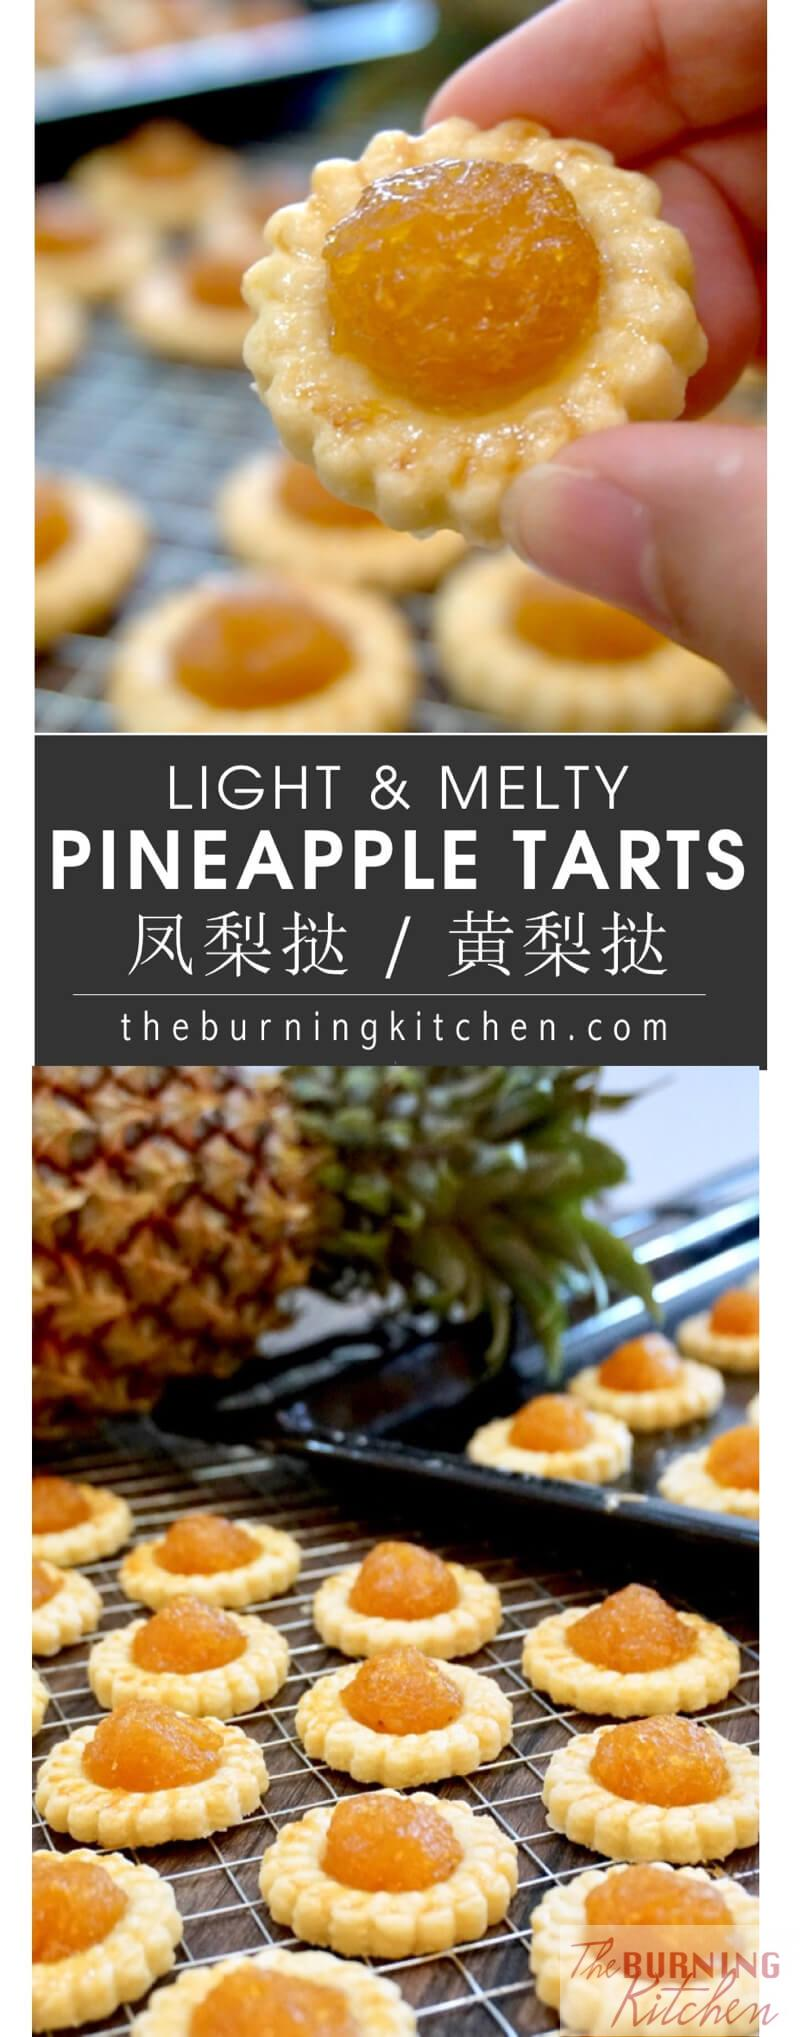 These highly addictive pineapple tarts are made from scratch using homemade chunky spiced pineapple jam, which sit atop a buttery, crumbly tart pastry. One piece will not be enough, so make all you want! #pineappletarts #homemade #chinesenewyear